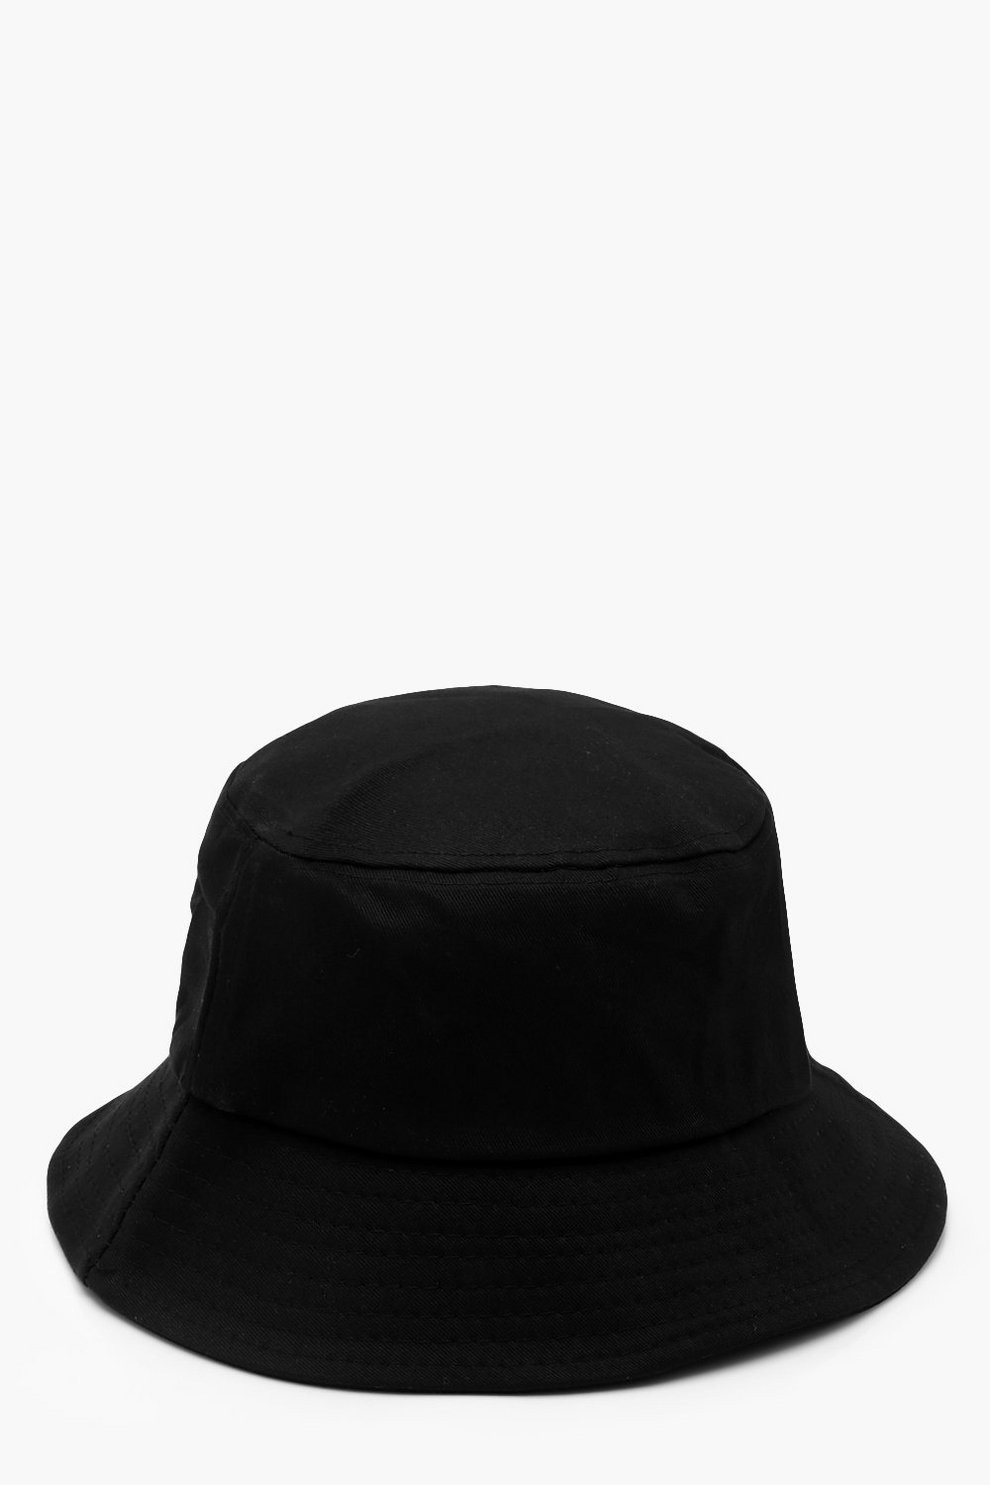 0563fee5 Womens Black Bucket Hat. Hover to zoom